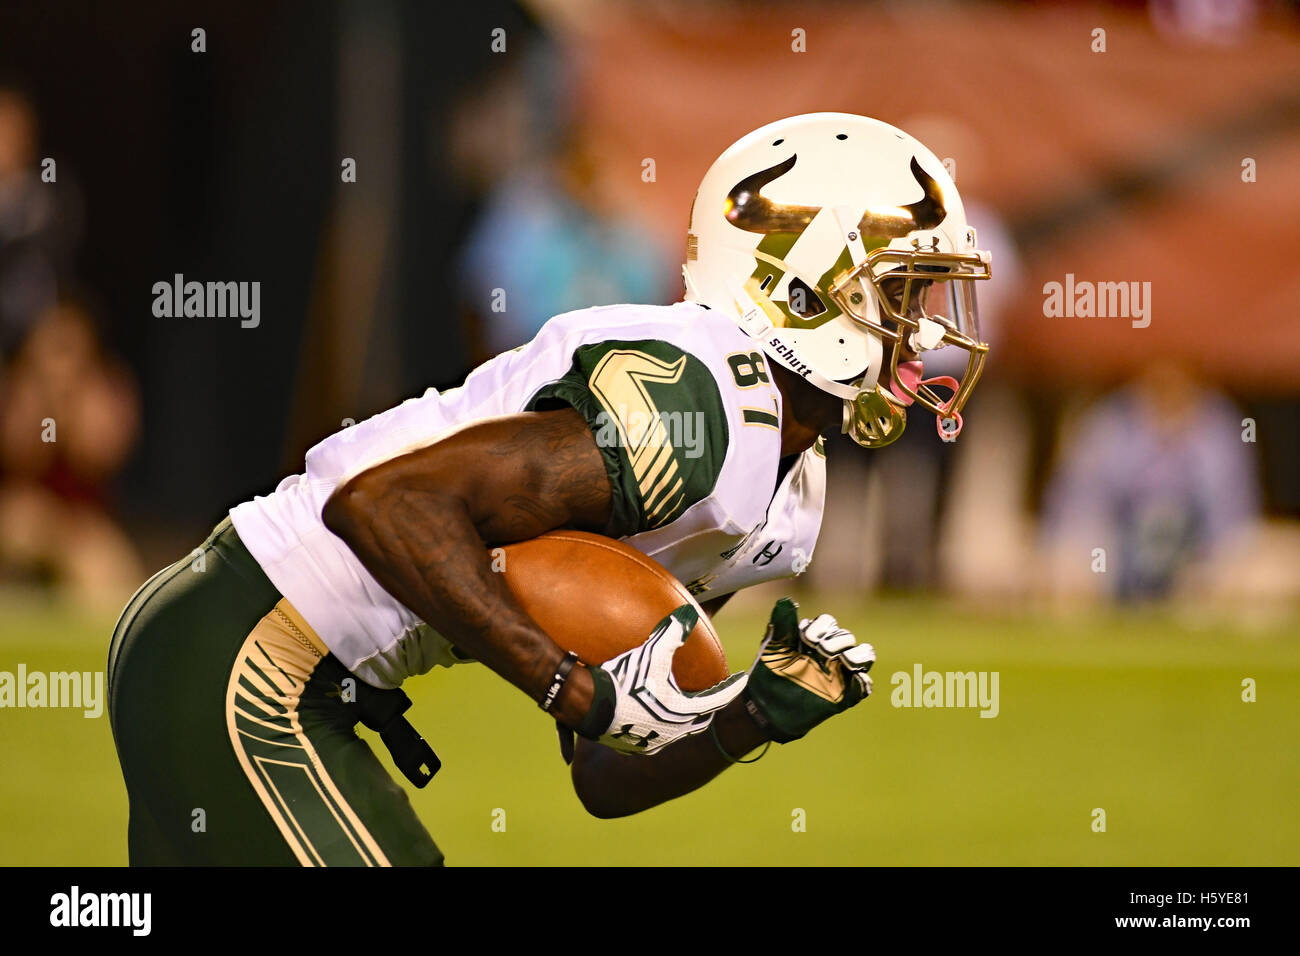 Philadelphia, Pennsylvania, USA. 21st Oct, 2016. USF's slot receiver, RODNEY ADAMS in action during the game - Stock Image